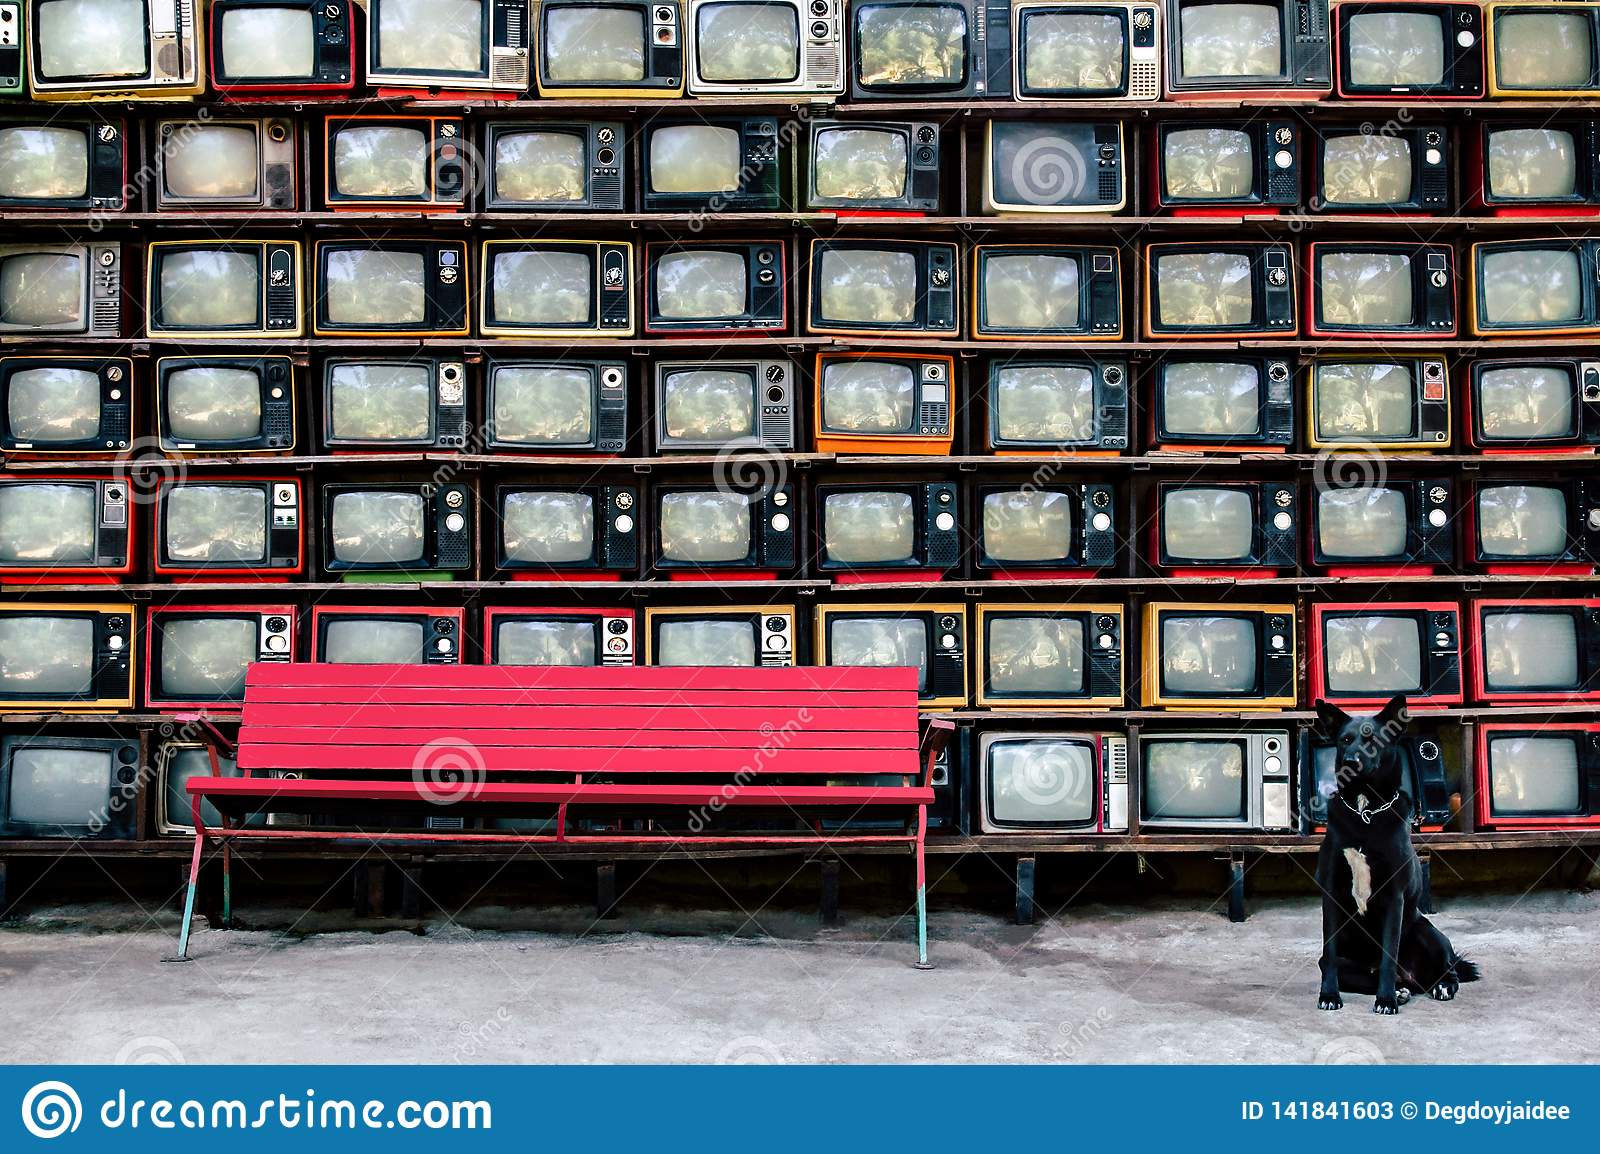 Retro style old television from 1950, 1960 and 1970s.With Red bench and black dog is looking camera.